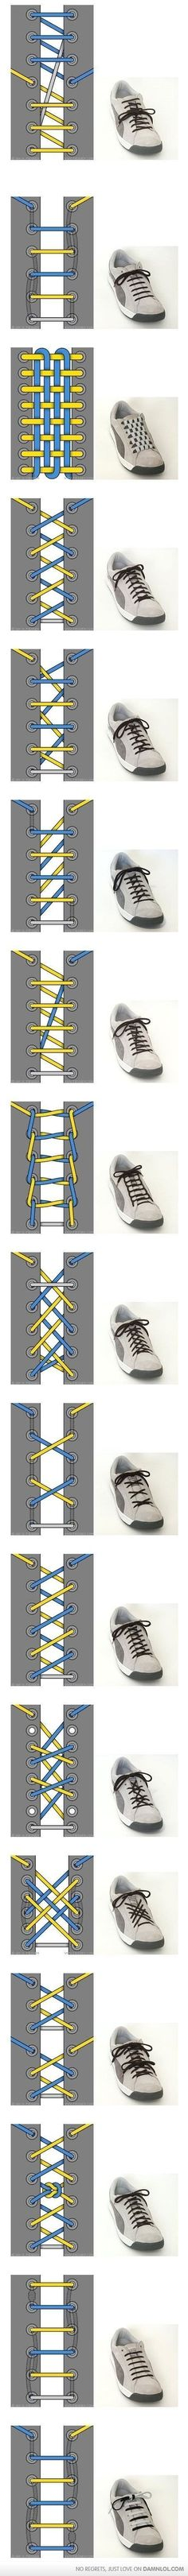 DIY: How to tie a shoe with different combinations